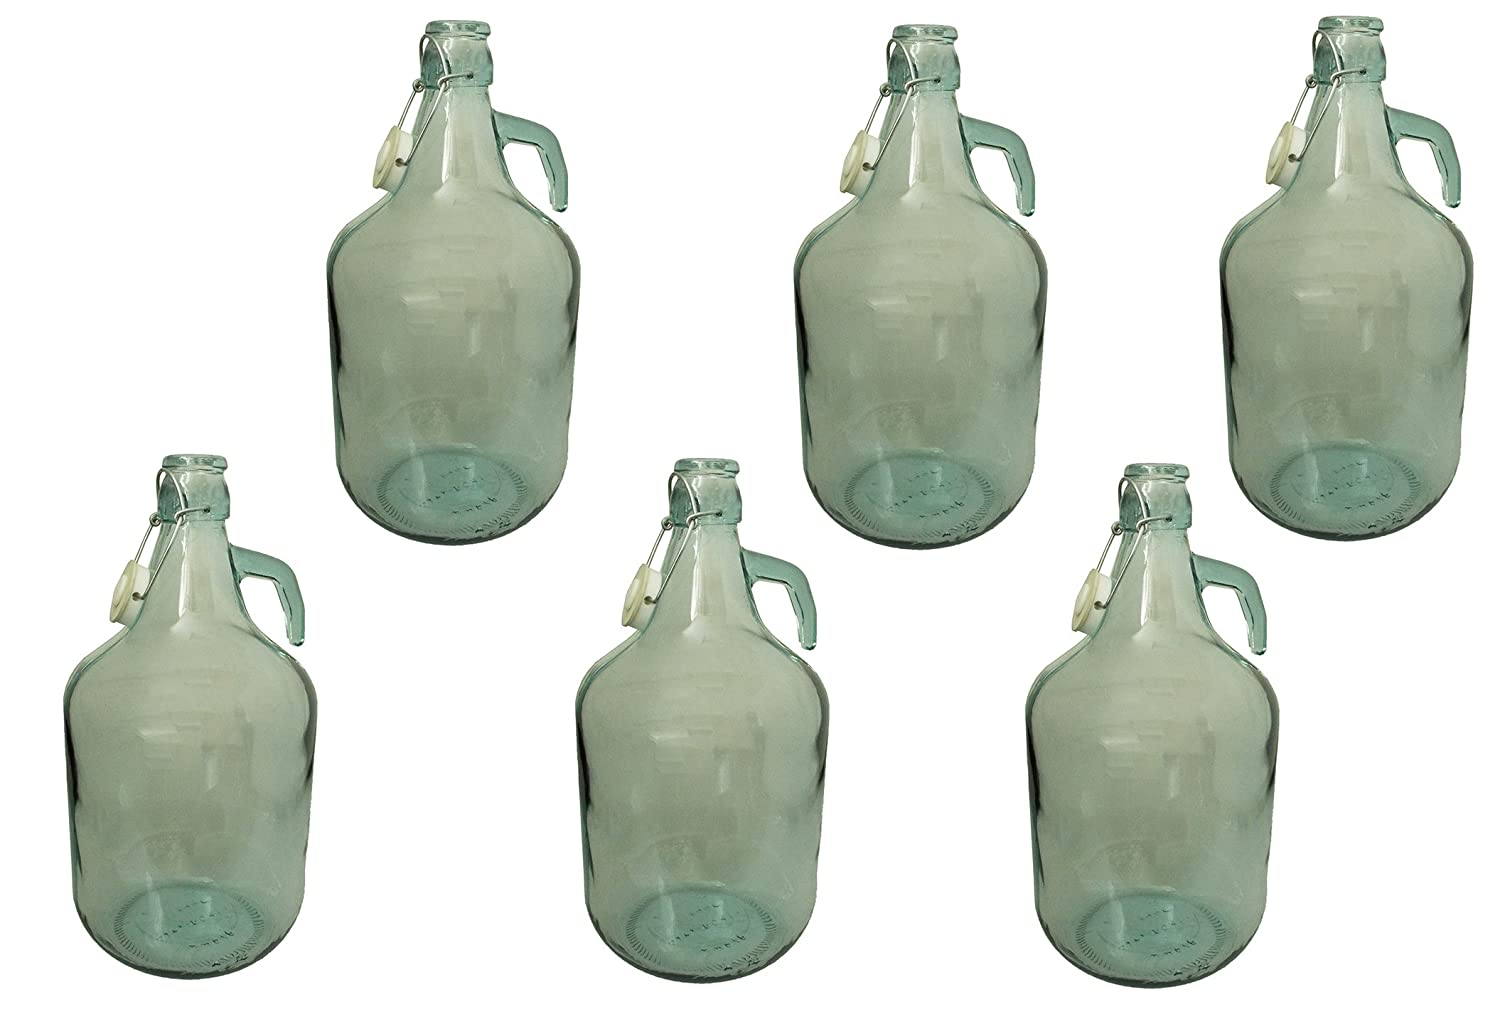 5L Demijohn for wine making/storage with swing top cap,(pack of 6)NEXT WORKING DAY DELIVERY(MAINLAND UK) E-BEST-OFFER